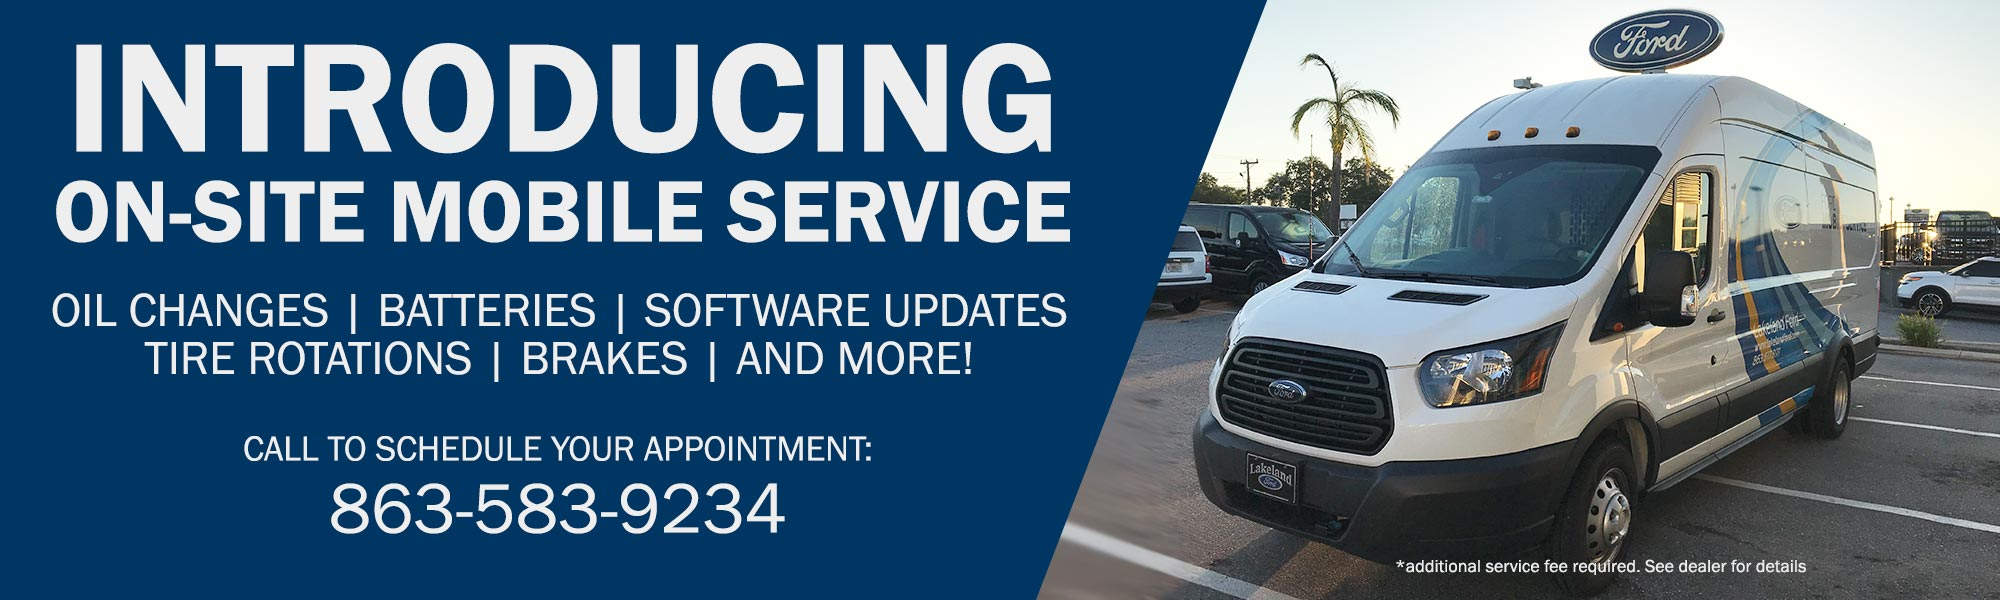 Lakeland Ford Mobile On-Site Services | Easy, Convenient and Hassle Free